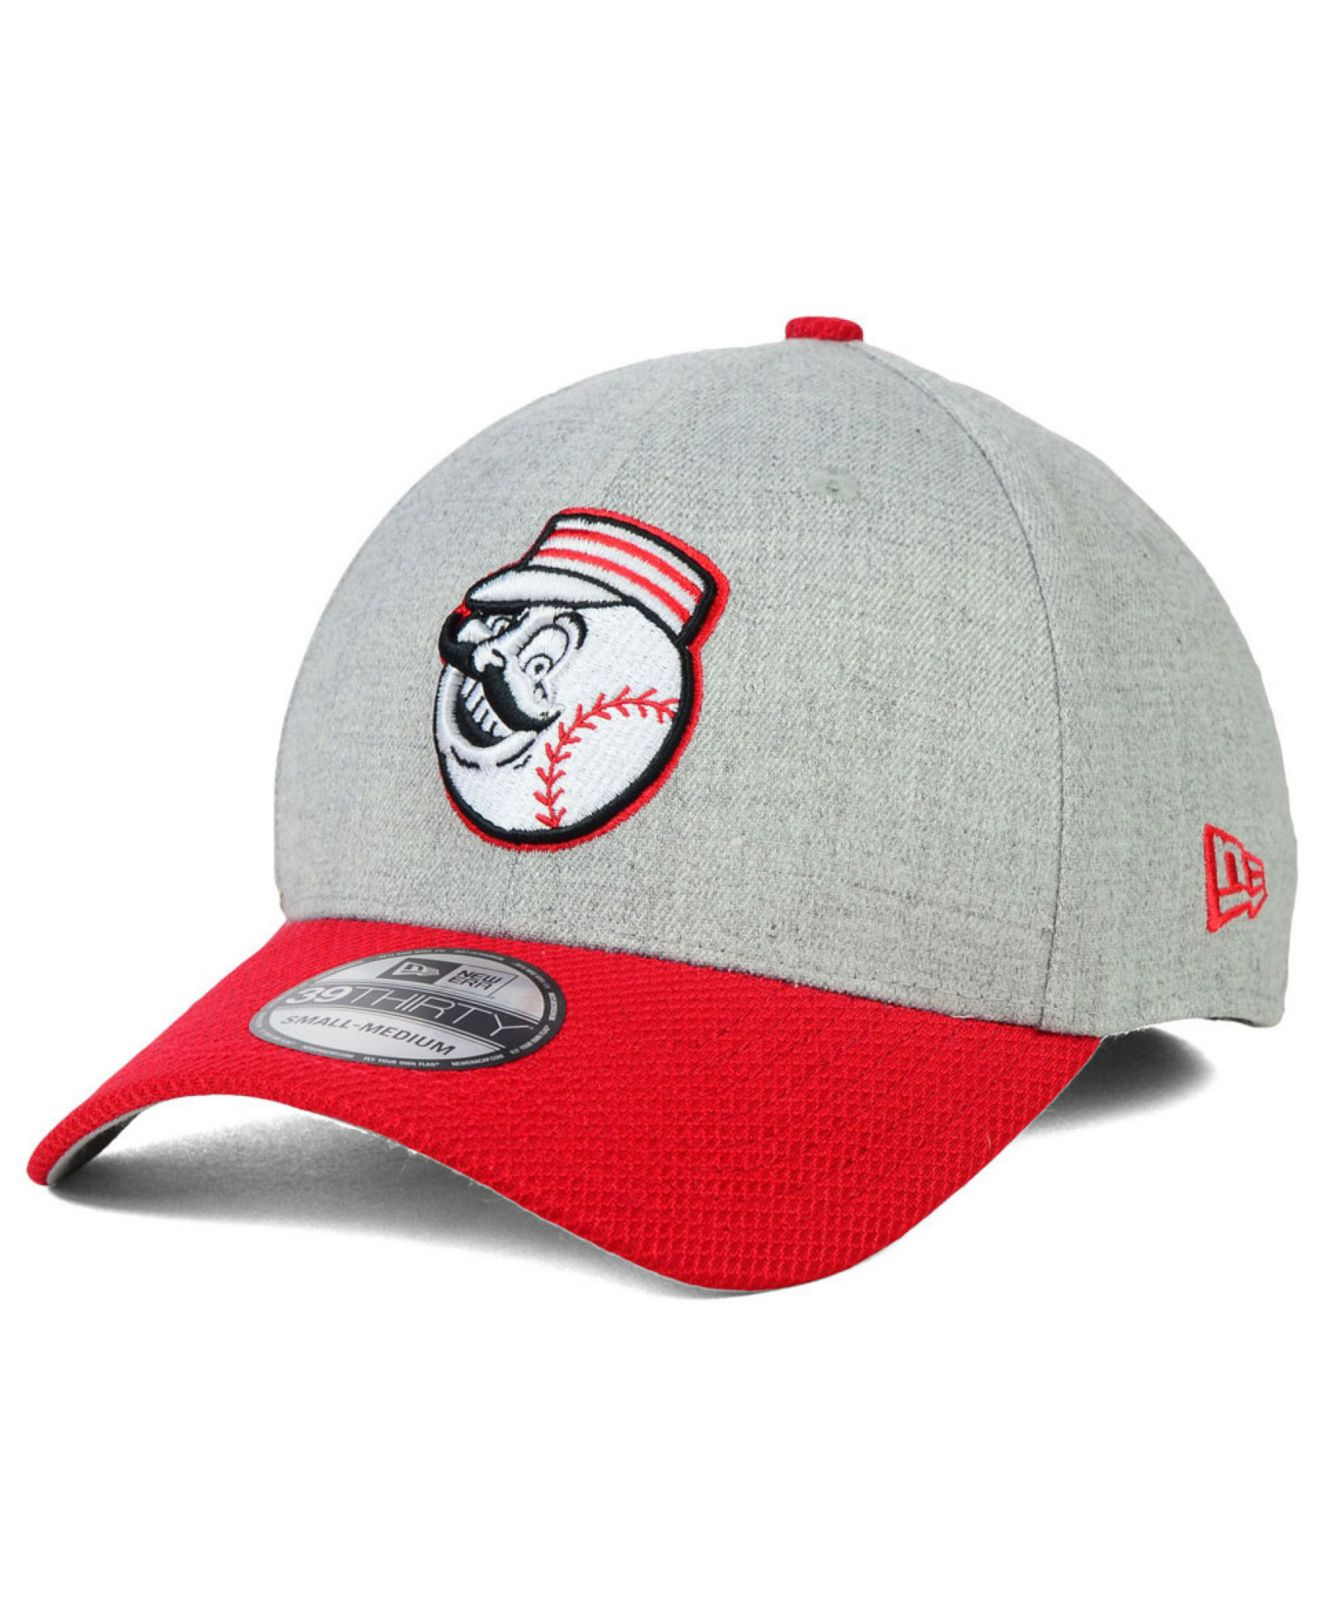 e02c45c2e7b ... hat 8bfc9 acb40  germany lyst ktz cincinnati reds clubhouse 39thirty cap  in gray for men 88ea5 963ee